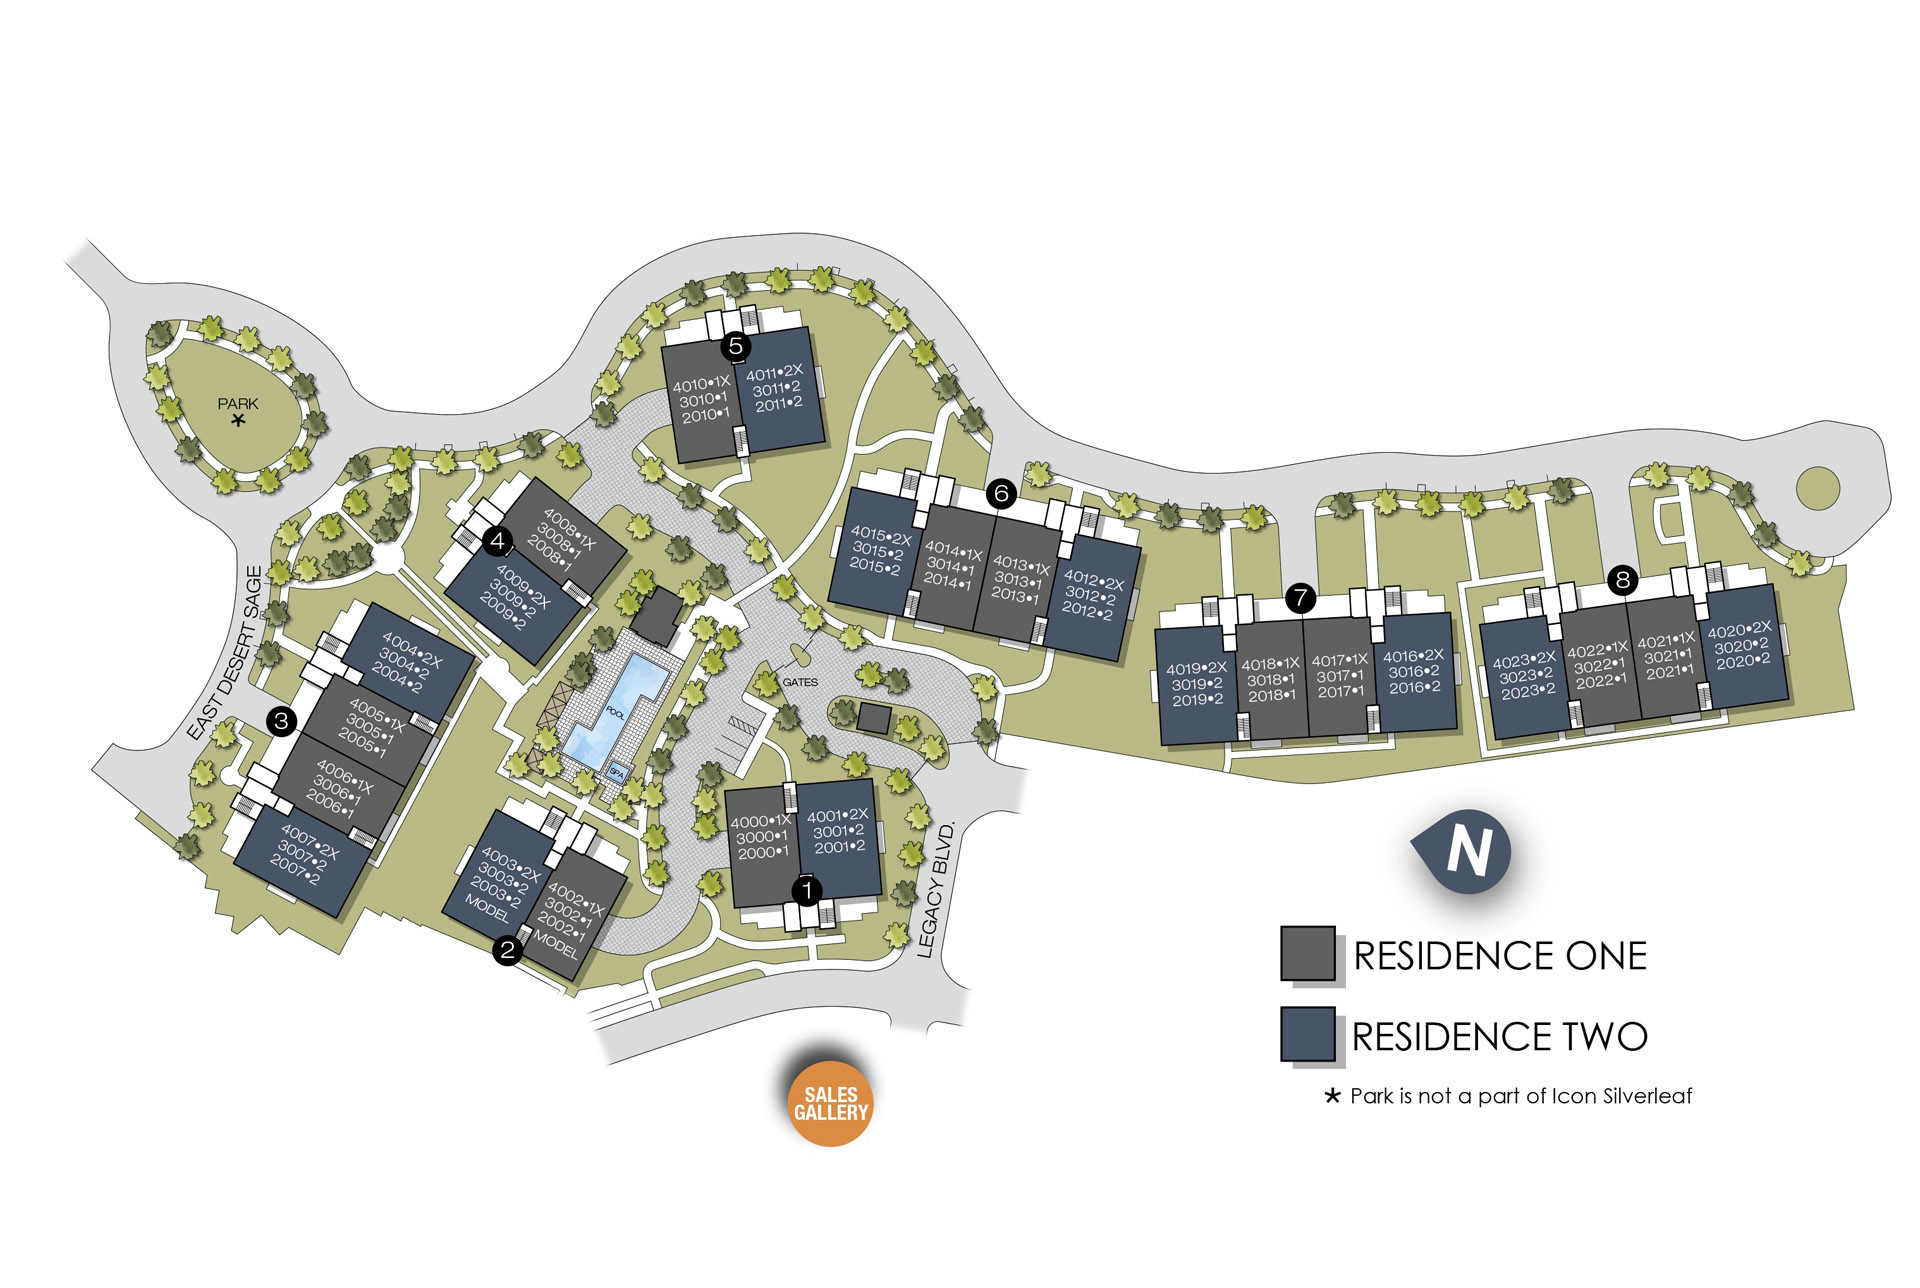 ICON Site Plan